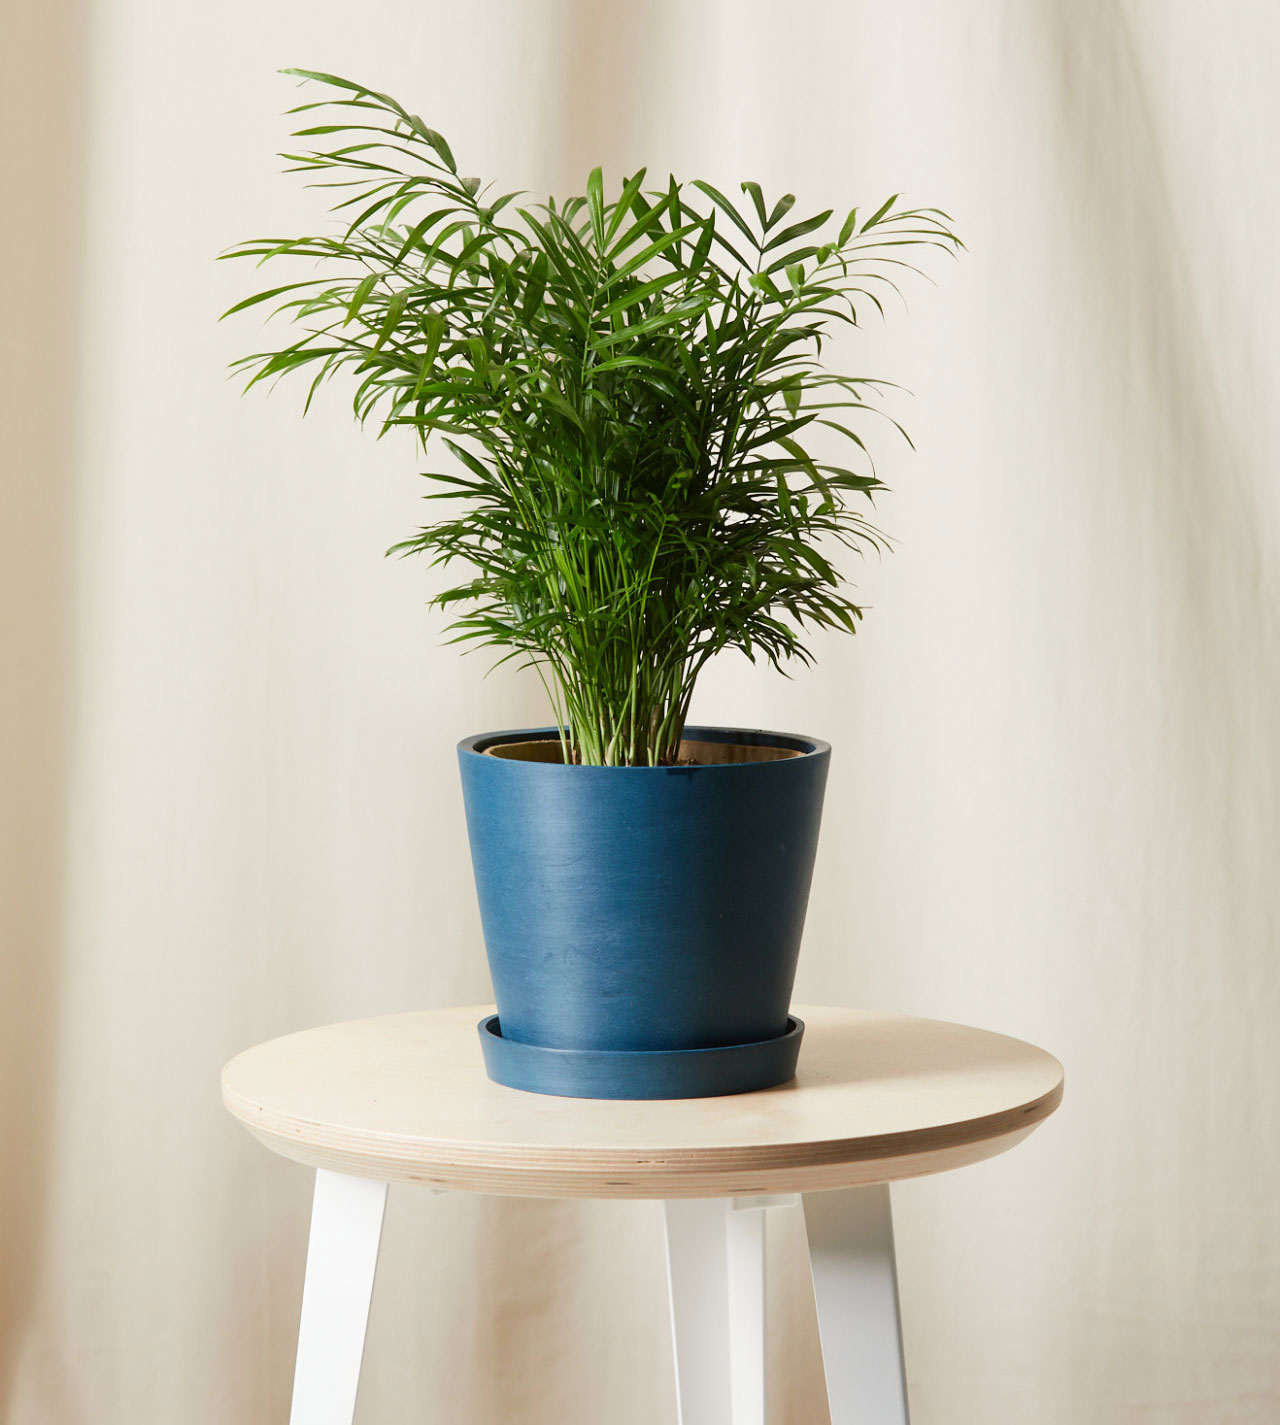 Best gifts, gift ideas for women - Bloomscape Parlor Palm